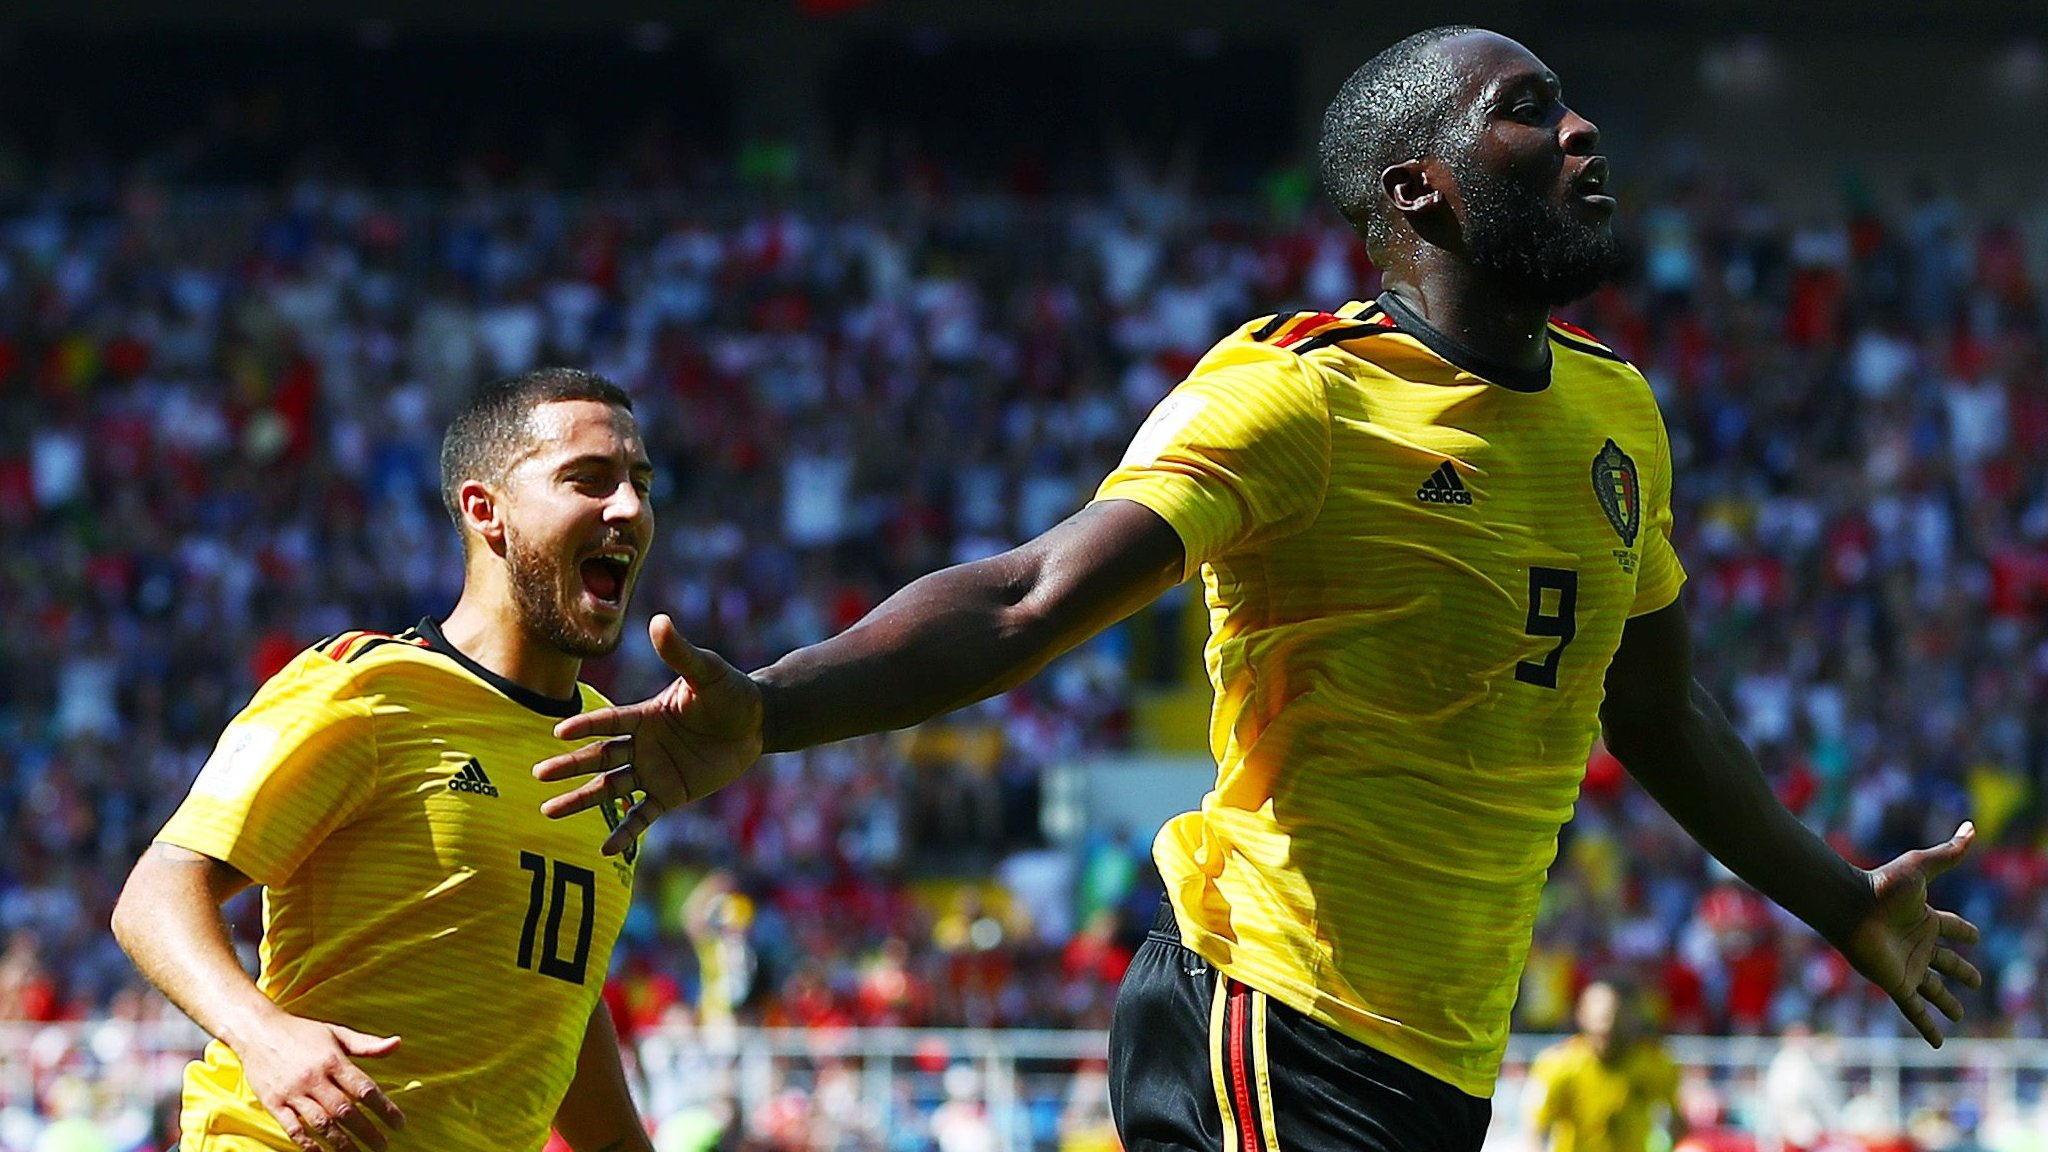 Lukaku & Hazard put Belgium on verge of last 16 - highlights & report